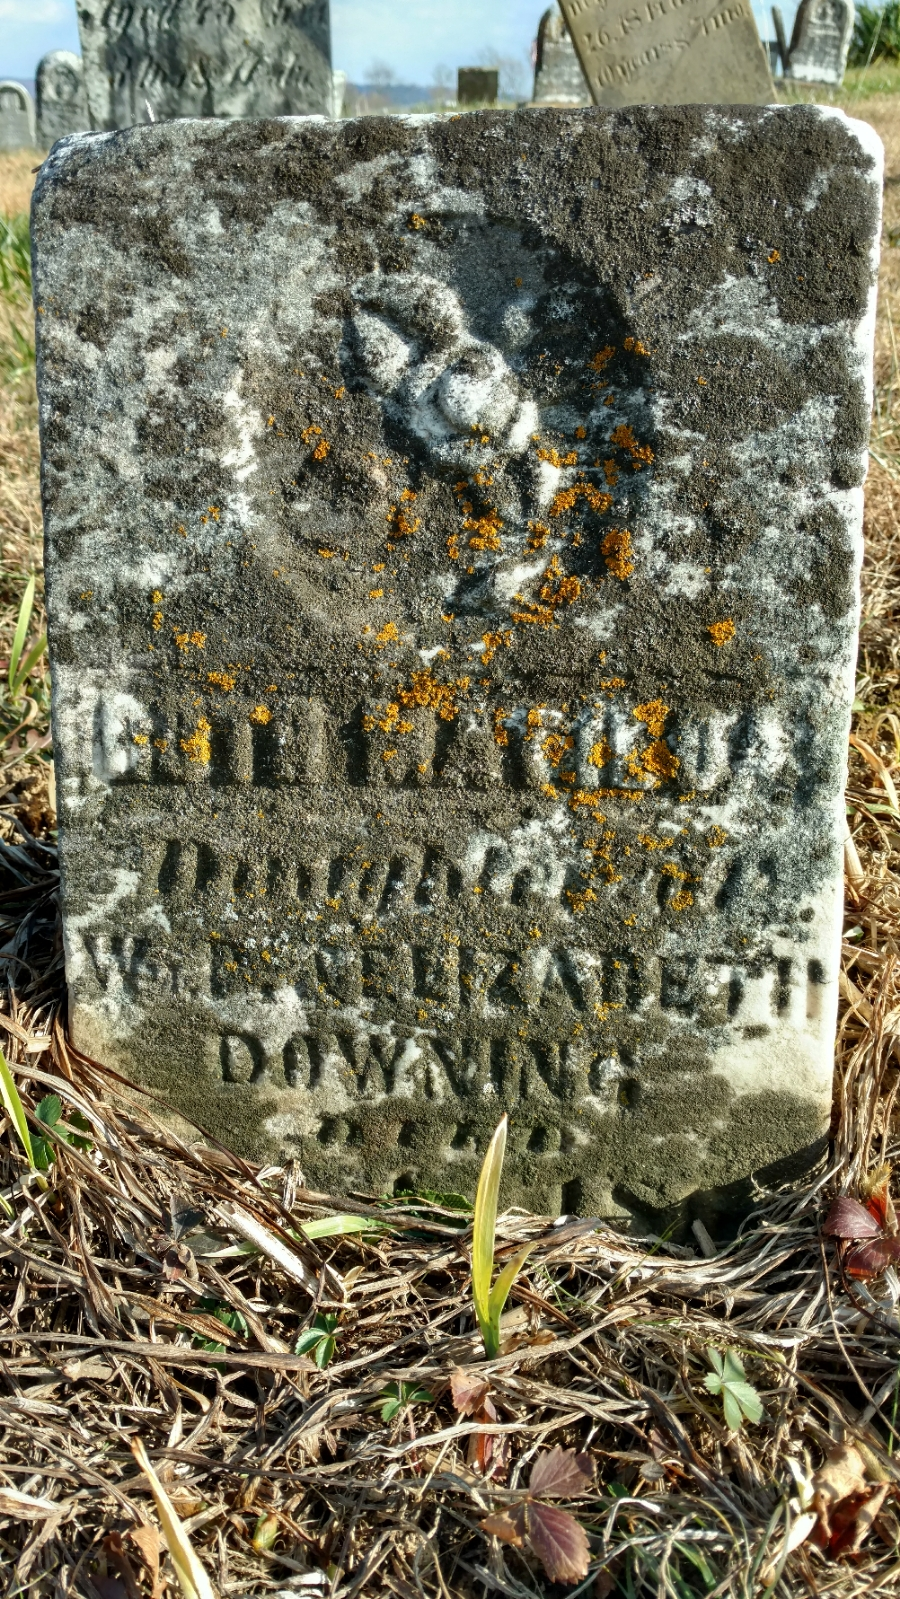 Ruth Matilda Downing - Find A Grave Memorial